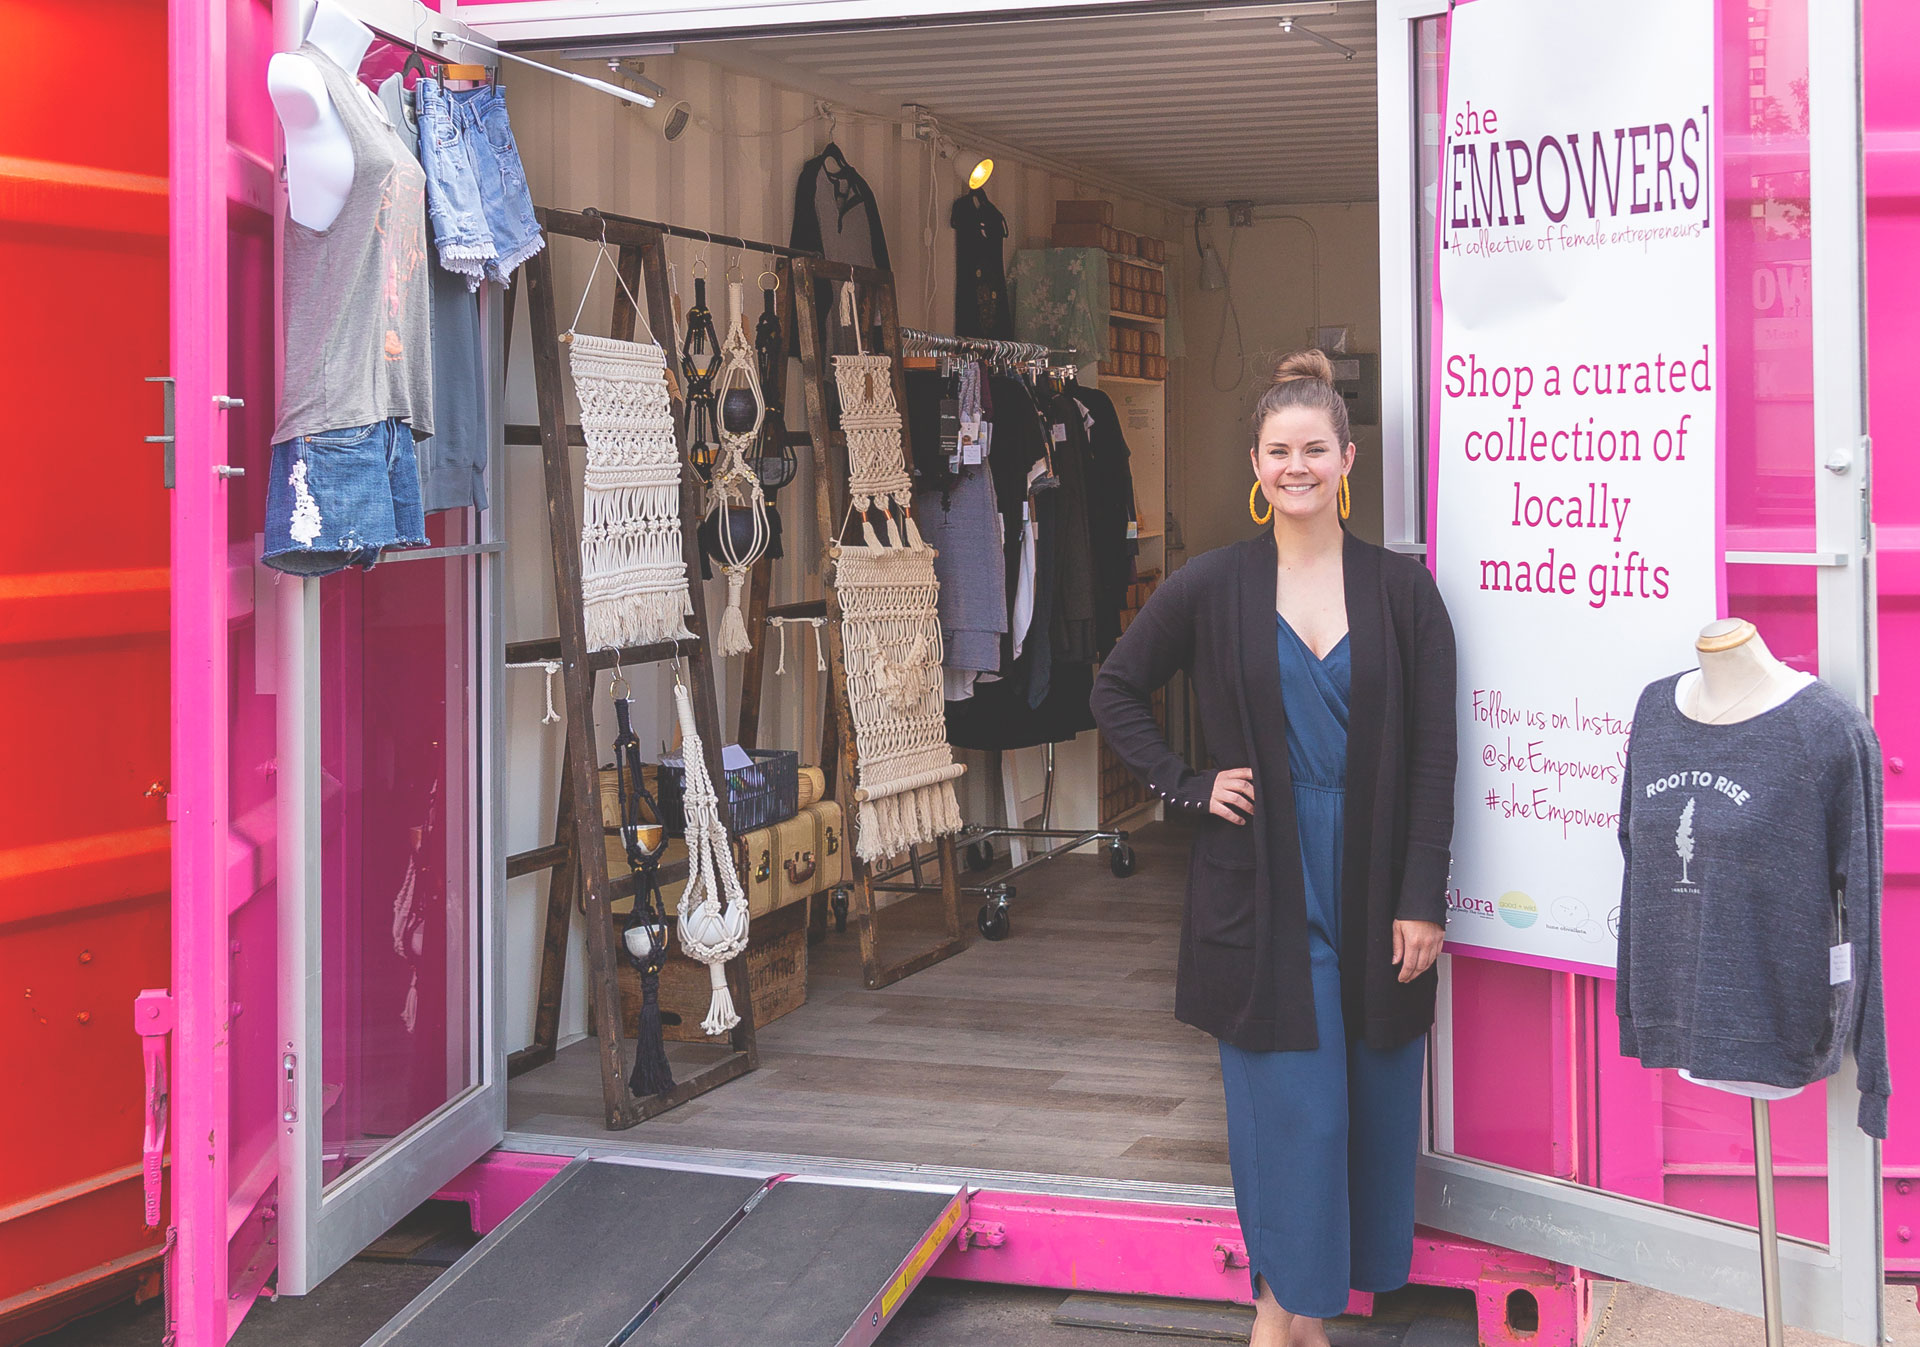 Alora Boutique's, She[Empowers] EV Junction pop up container shop